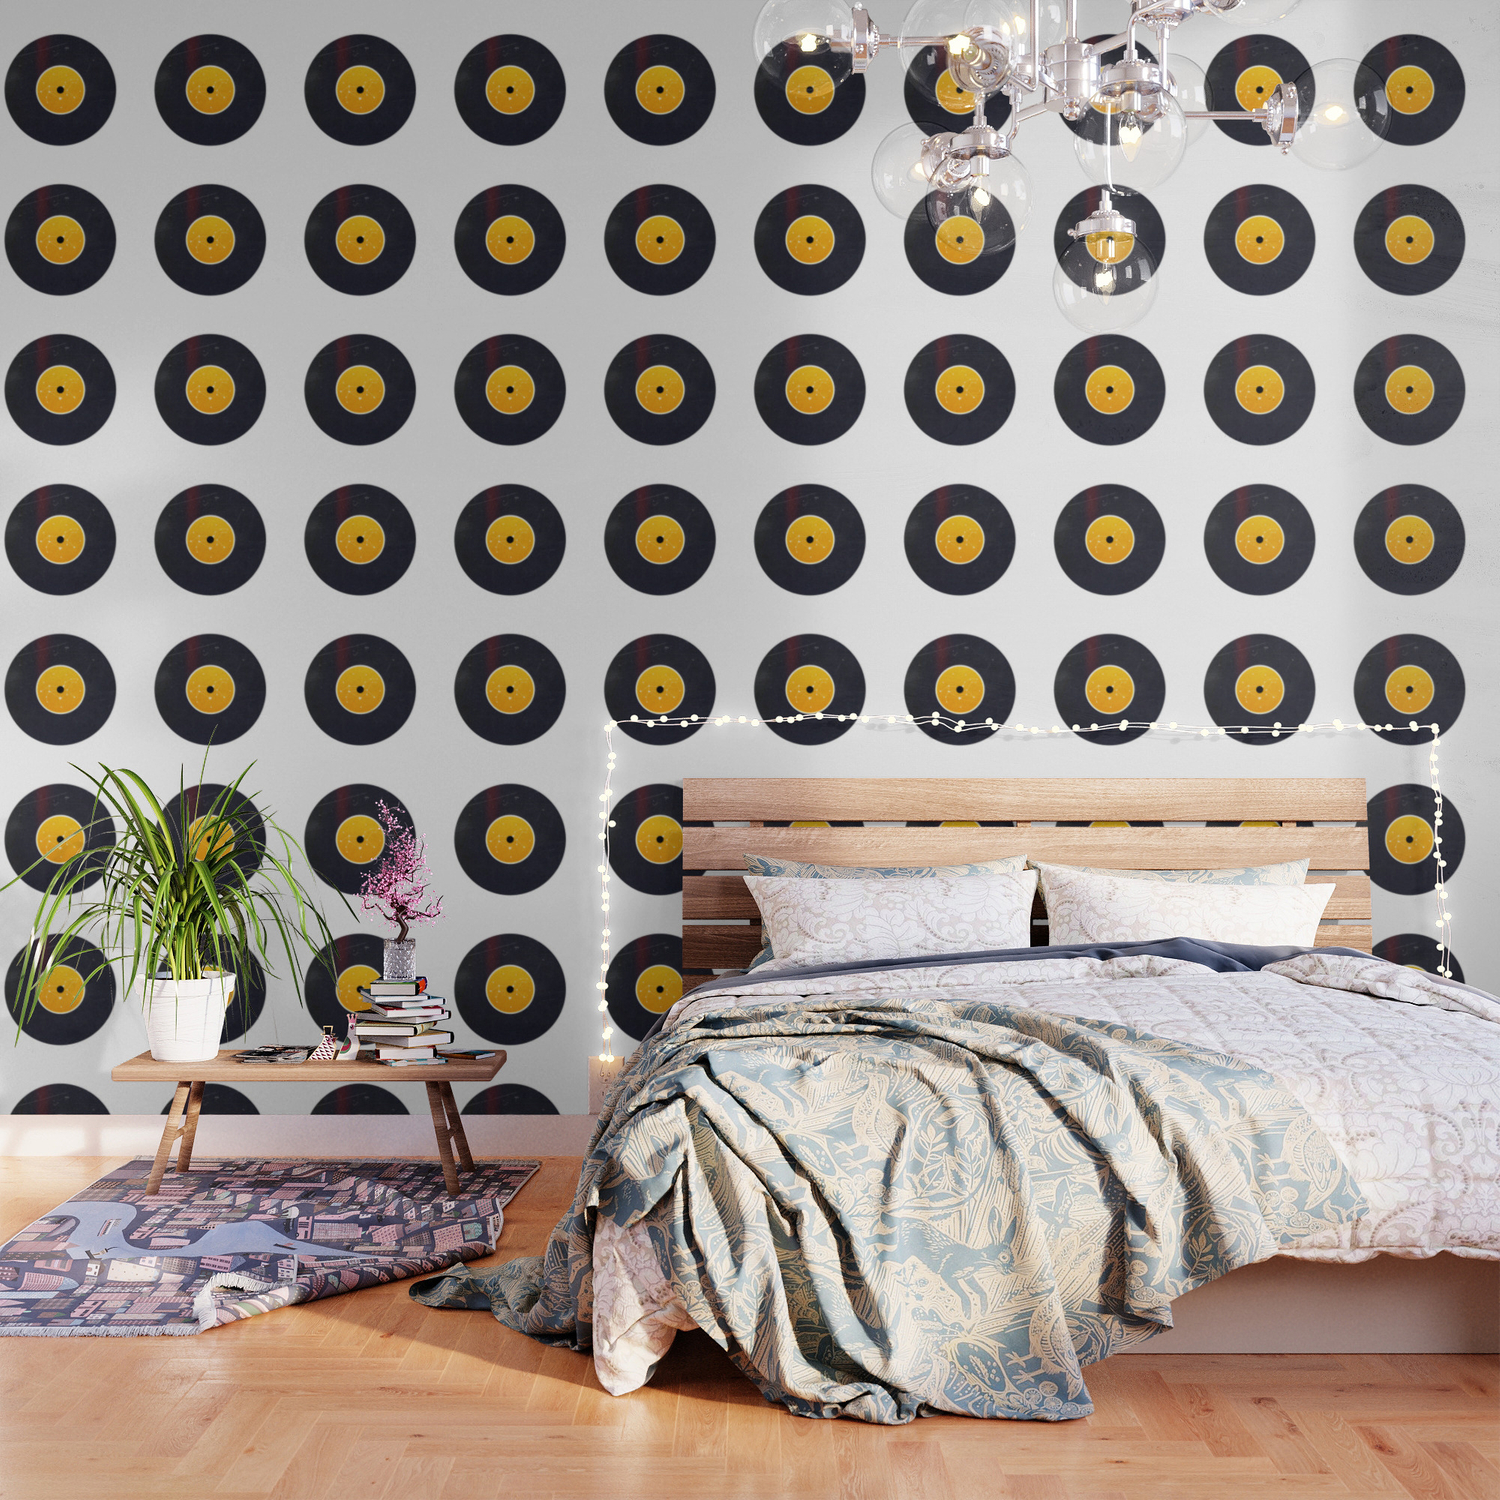 Vinyl Record Star Sign Art Leo Wallpaper By Oldurbanfarmhouse